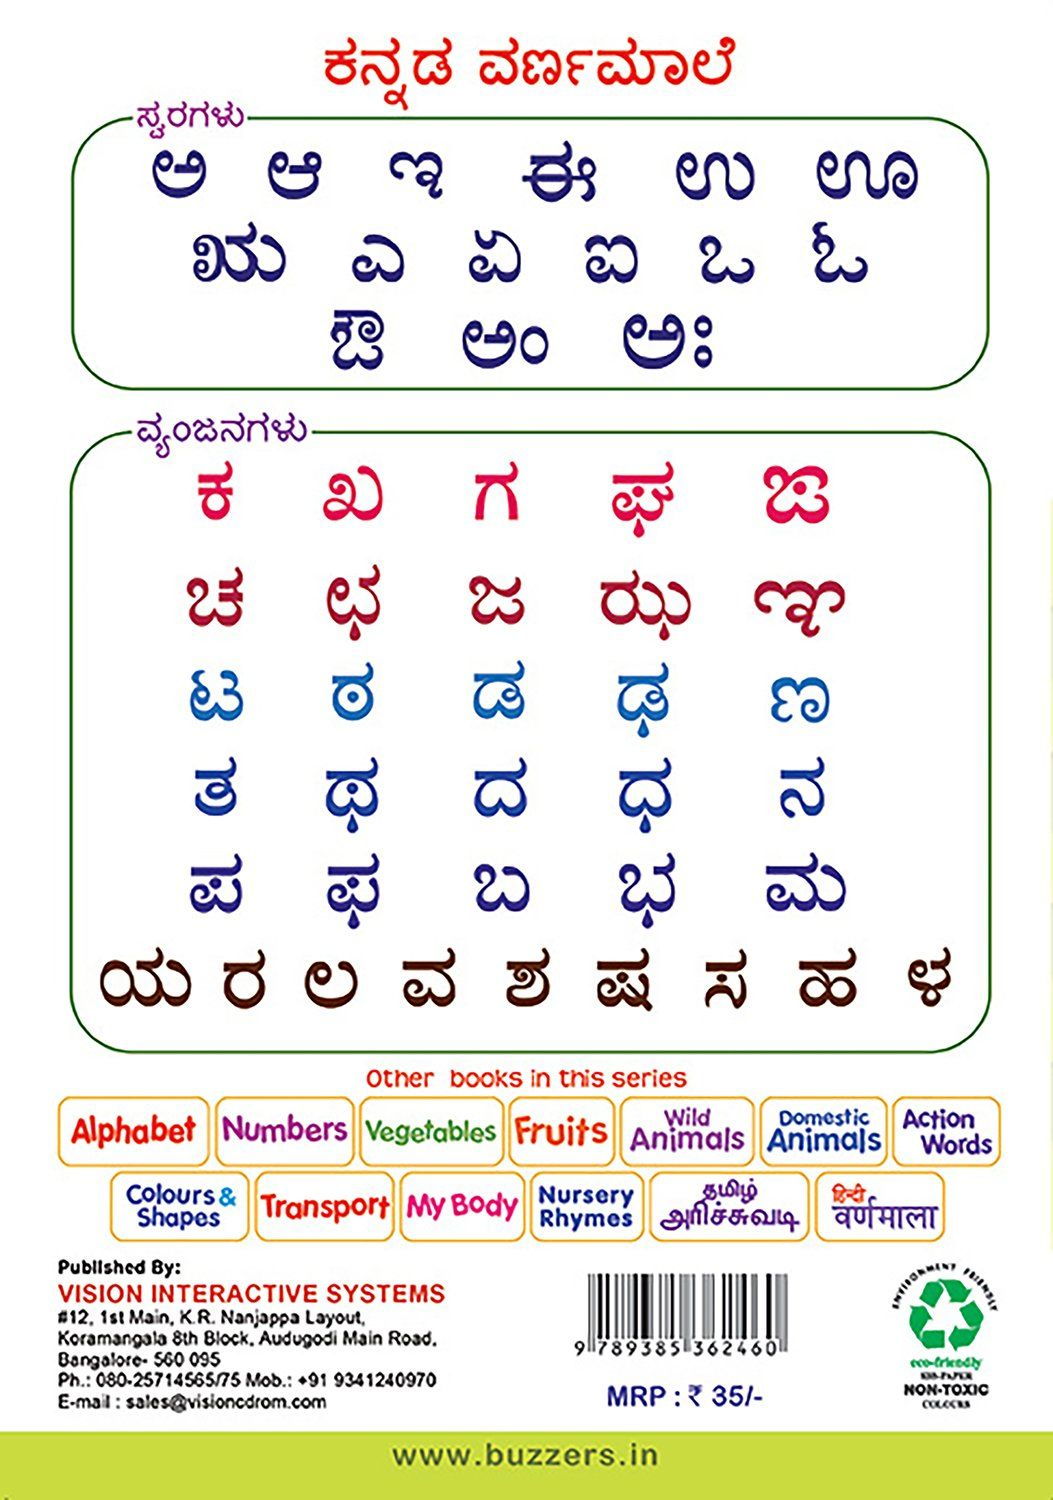 Unexpected Kannada Alphabets For Kids Chart 2019 In 2020 Alphabet For Kids Alphabet Charts For Kids